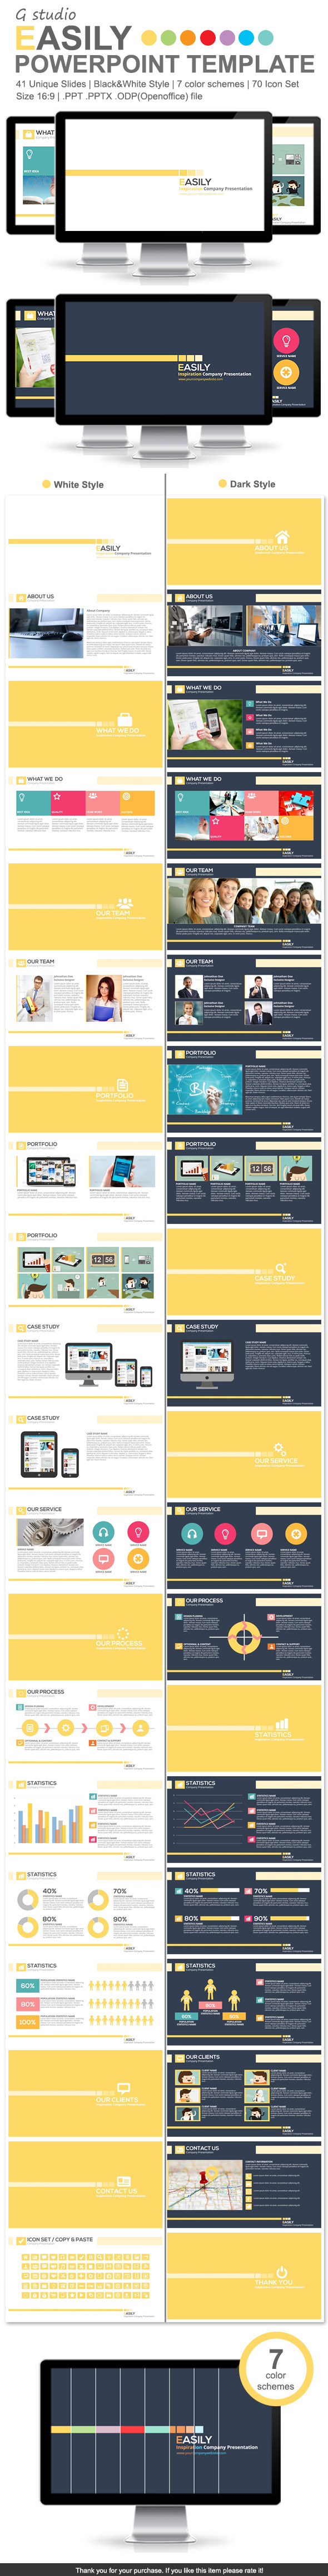 Gstudio Easily Powerpoint Template - Business PowerPoint Templates